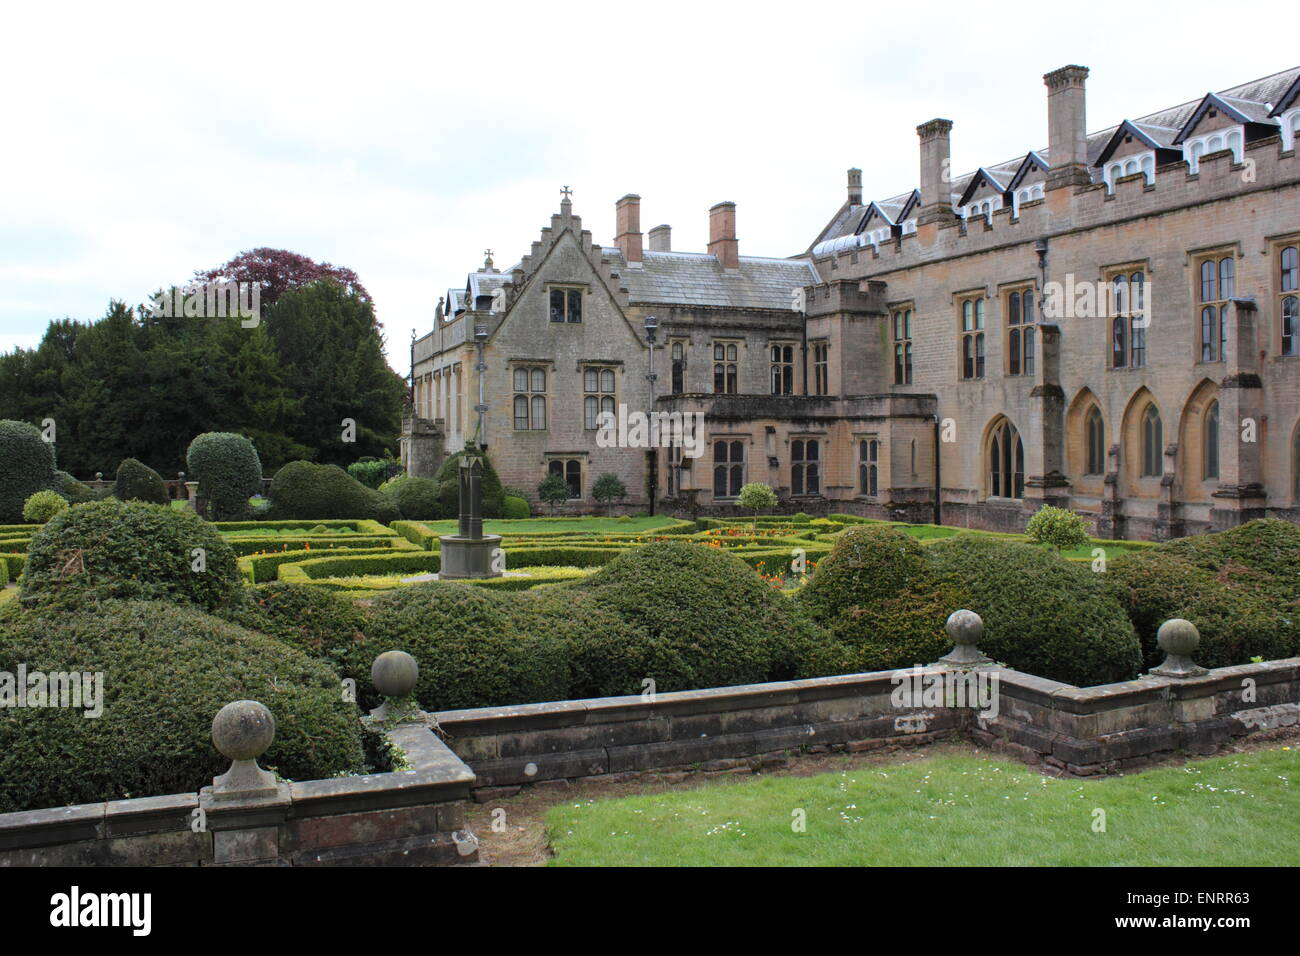 Newstead Abbey Spanish Gardens and Orangery - Stock Image